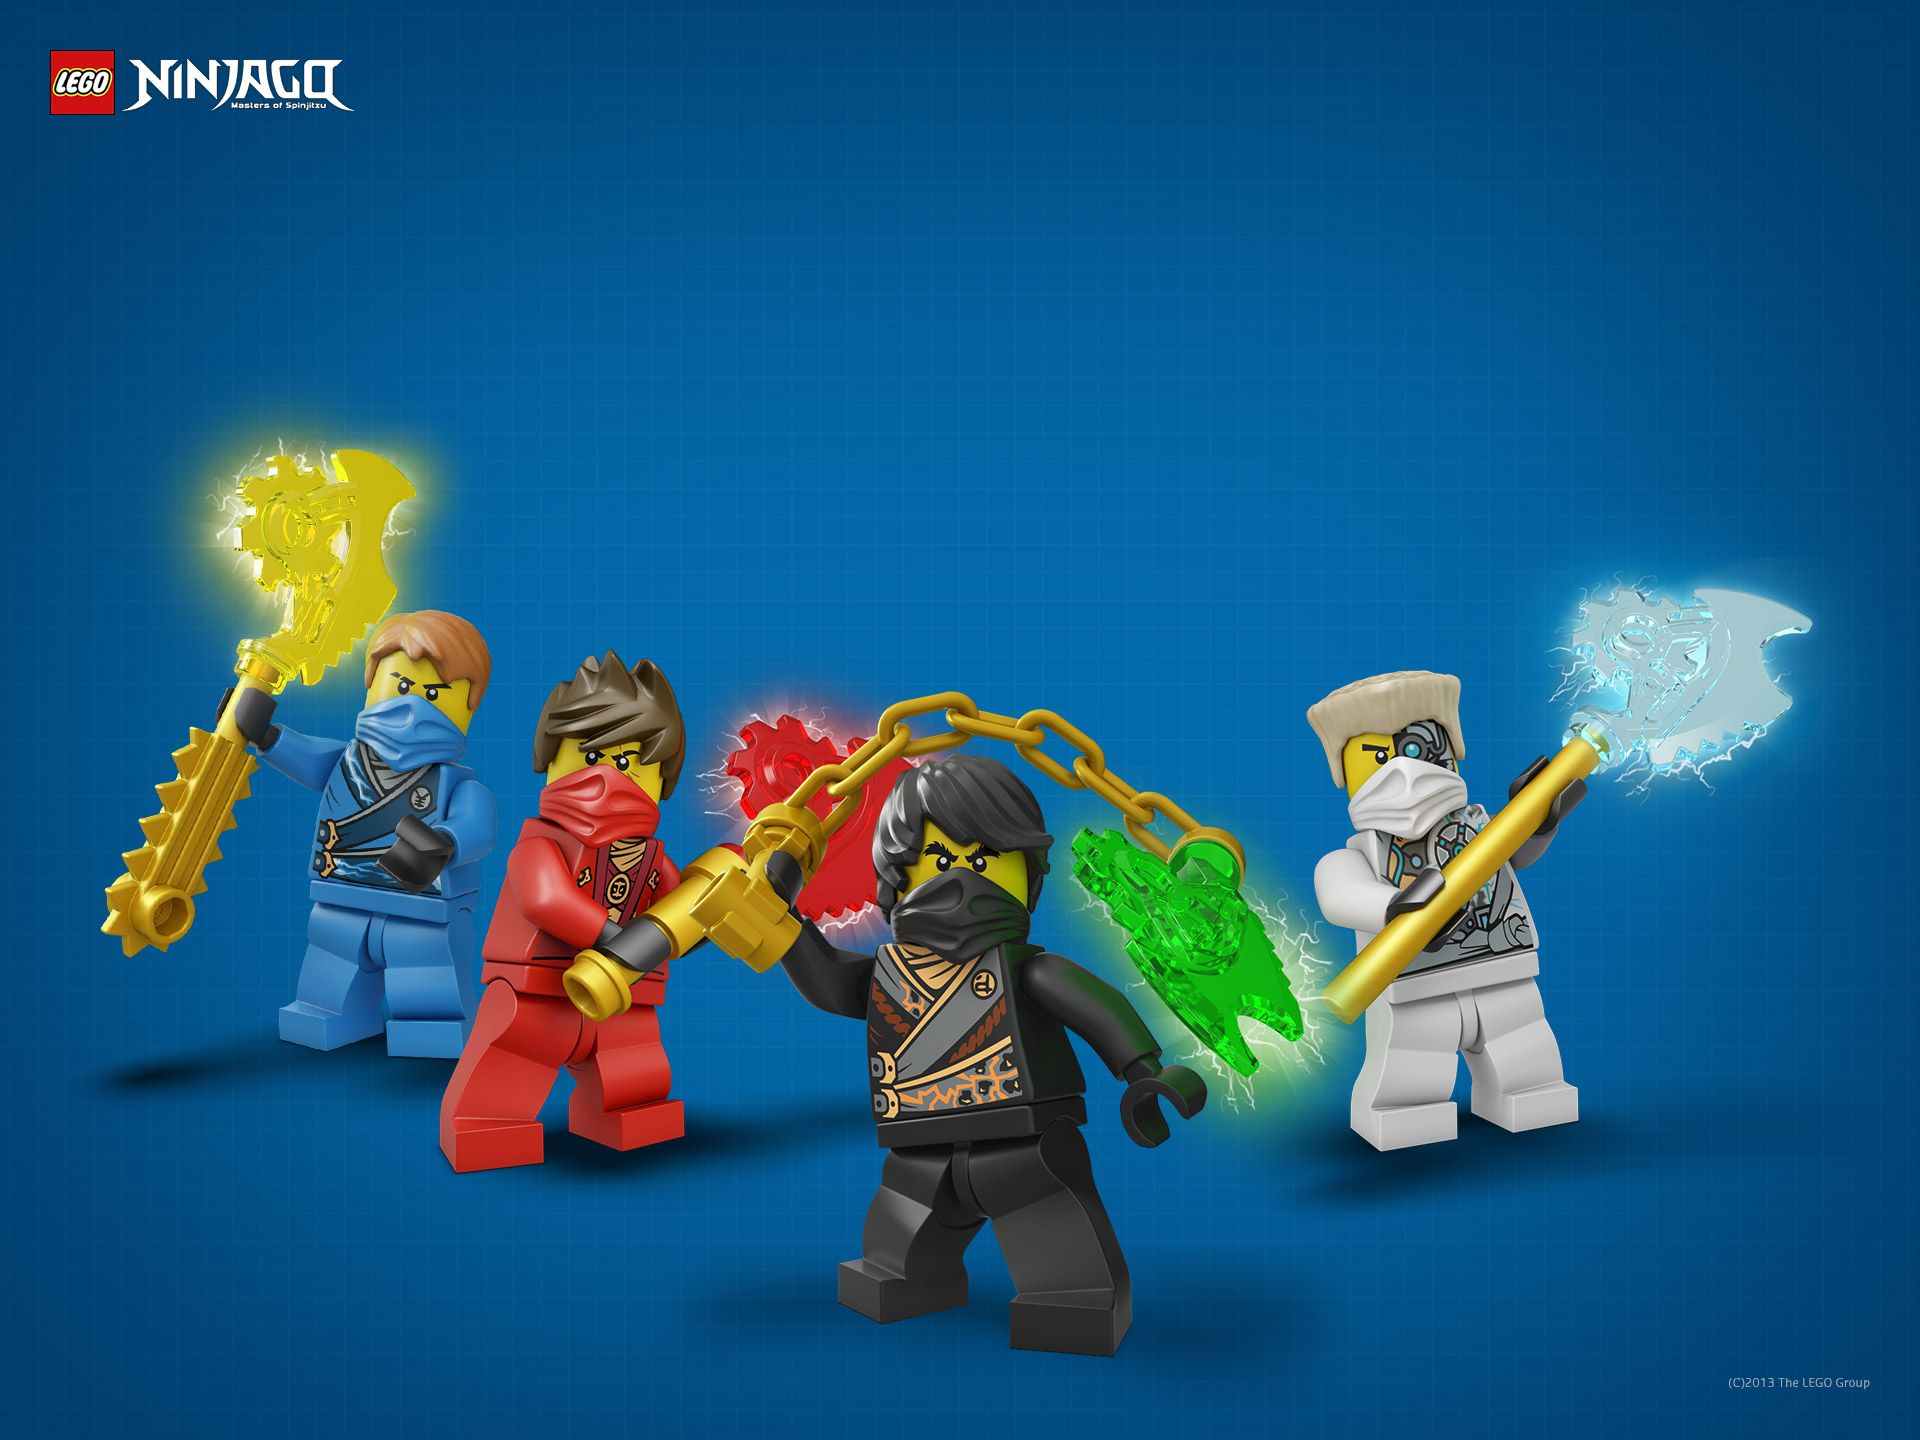 1920x1440 Lego Ninjago Characters - Wallpaper, High Definition, High Quality ...